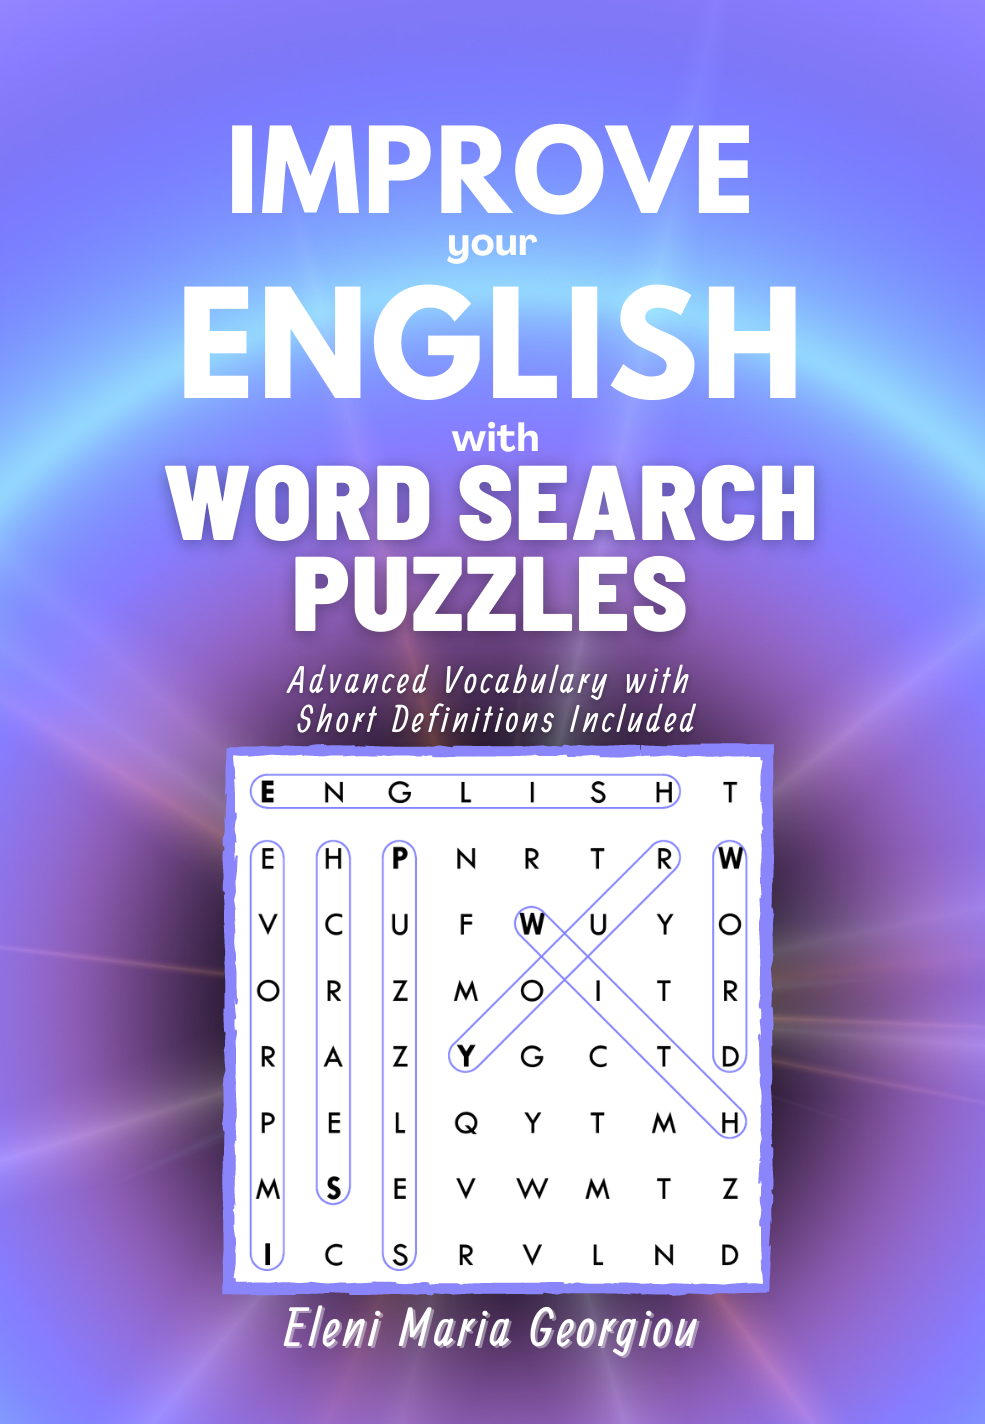 Improve your English with Word Search Puzzles: Advanced Vocabulary